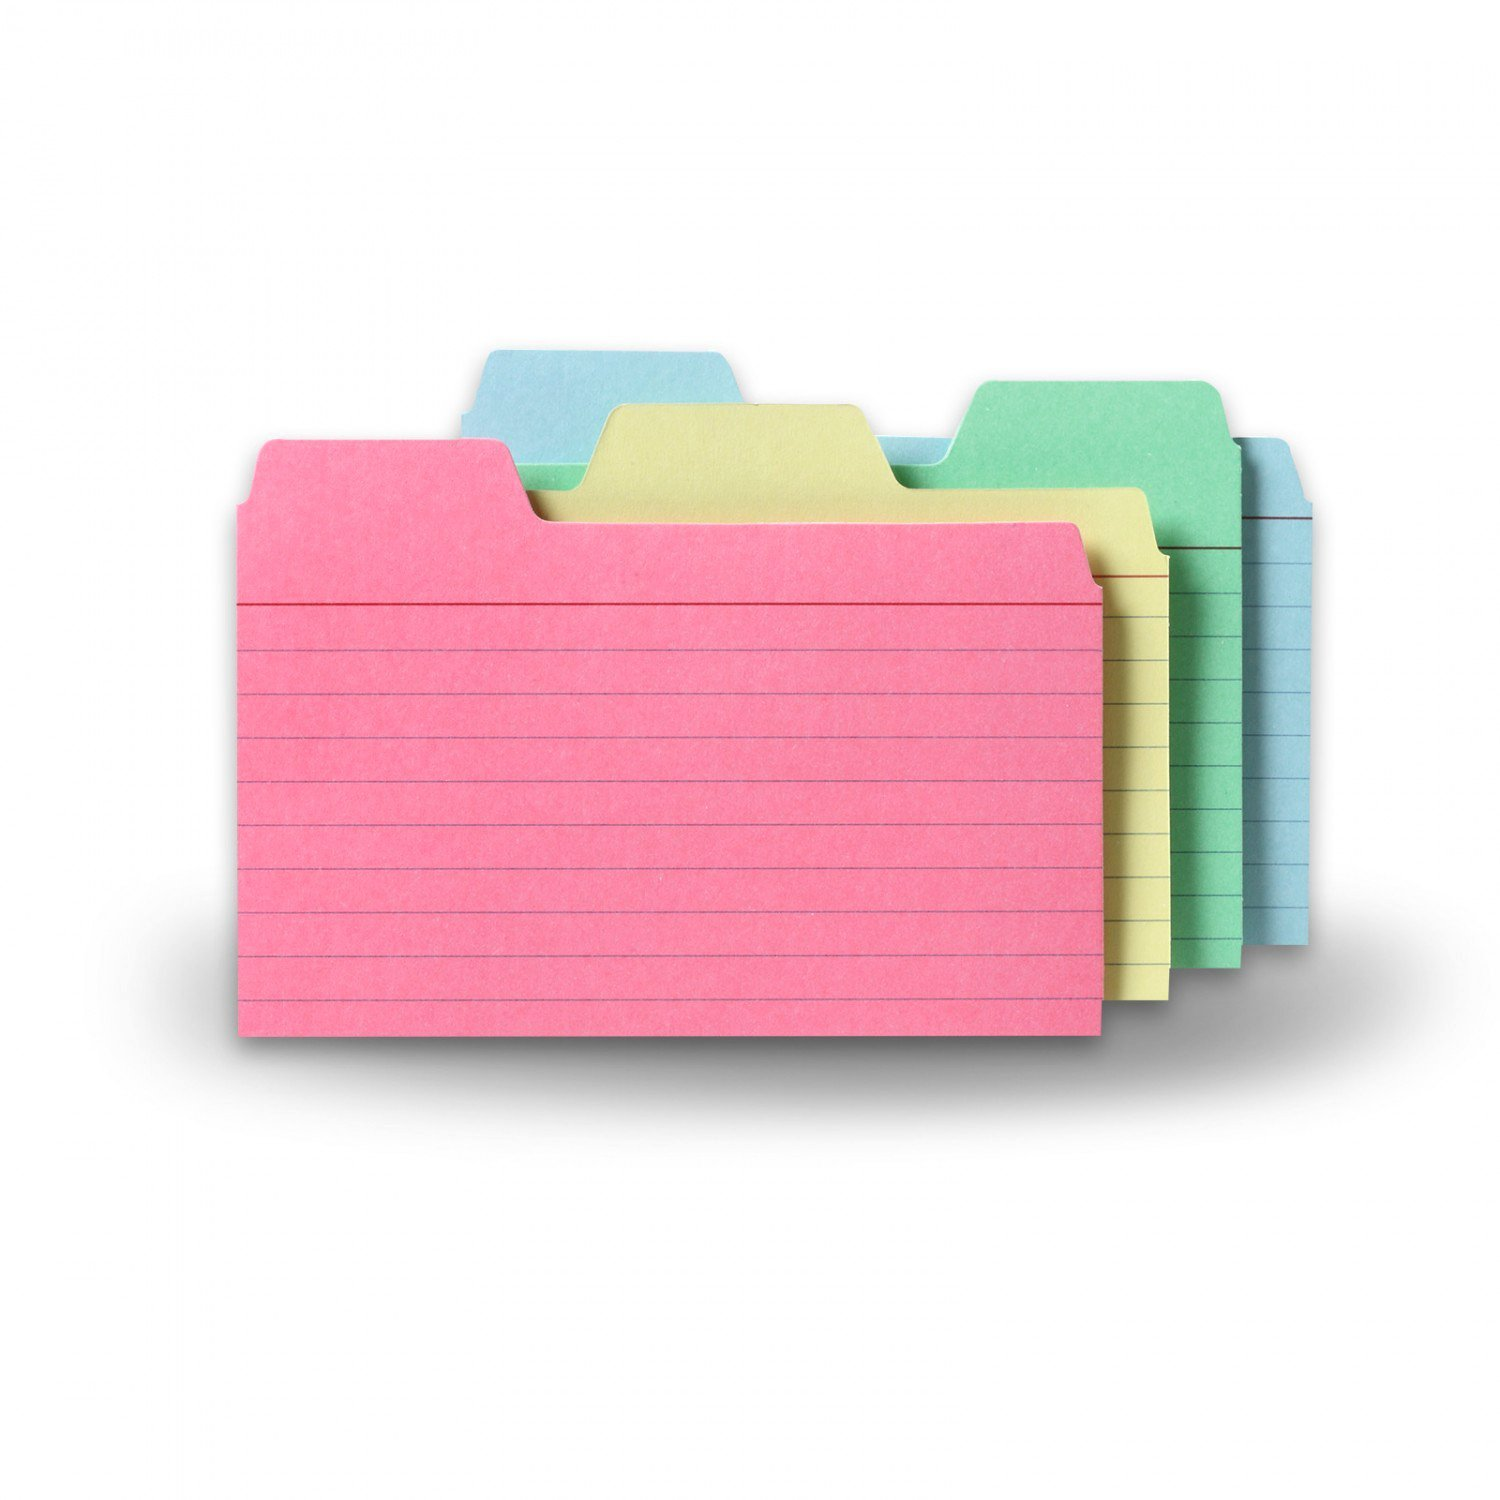 photo about Printable Index Cards 3x5 referred to as Obtain-It Tabbed Index Playing cards, 3 x 5 Inches, Different Colours, 48-Pack (Toes07216)